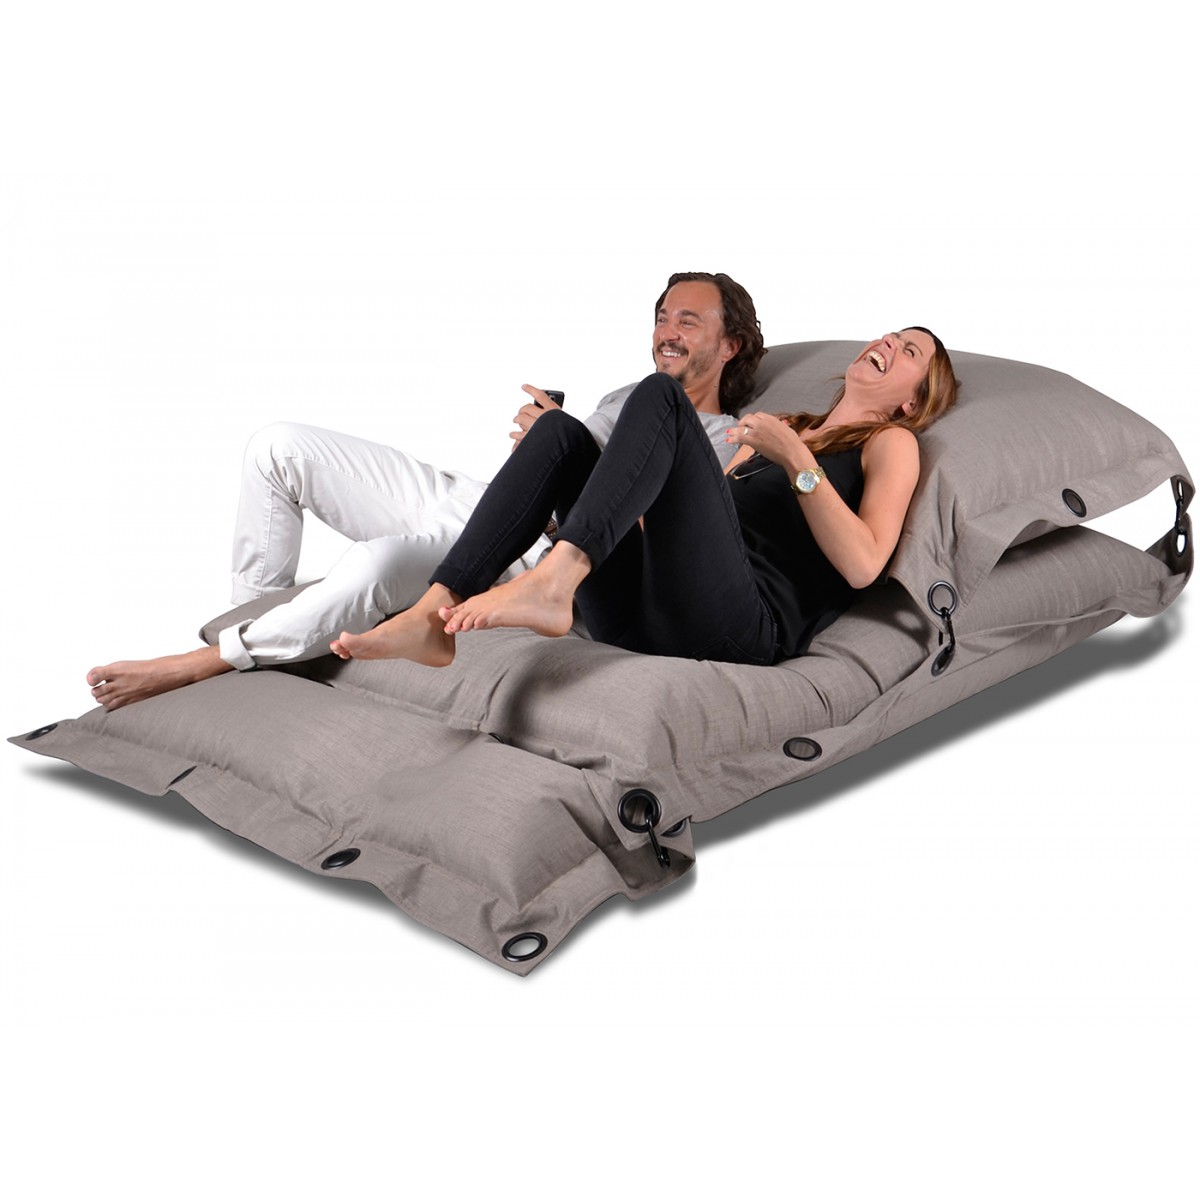 coussin de sol g ant big bag balsac par merowings. Black Bedroom Furniture Sets. Home Design Ideas